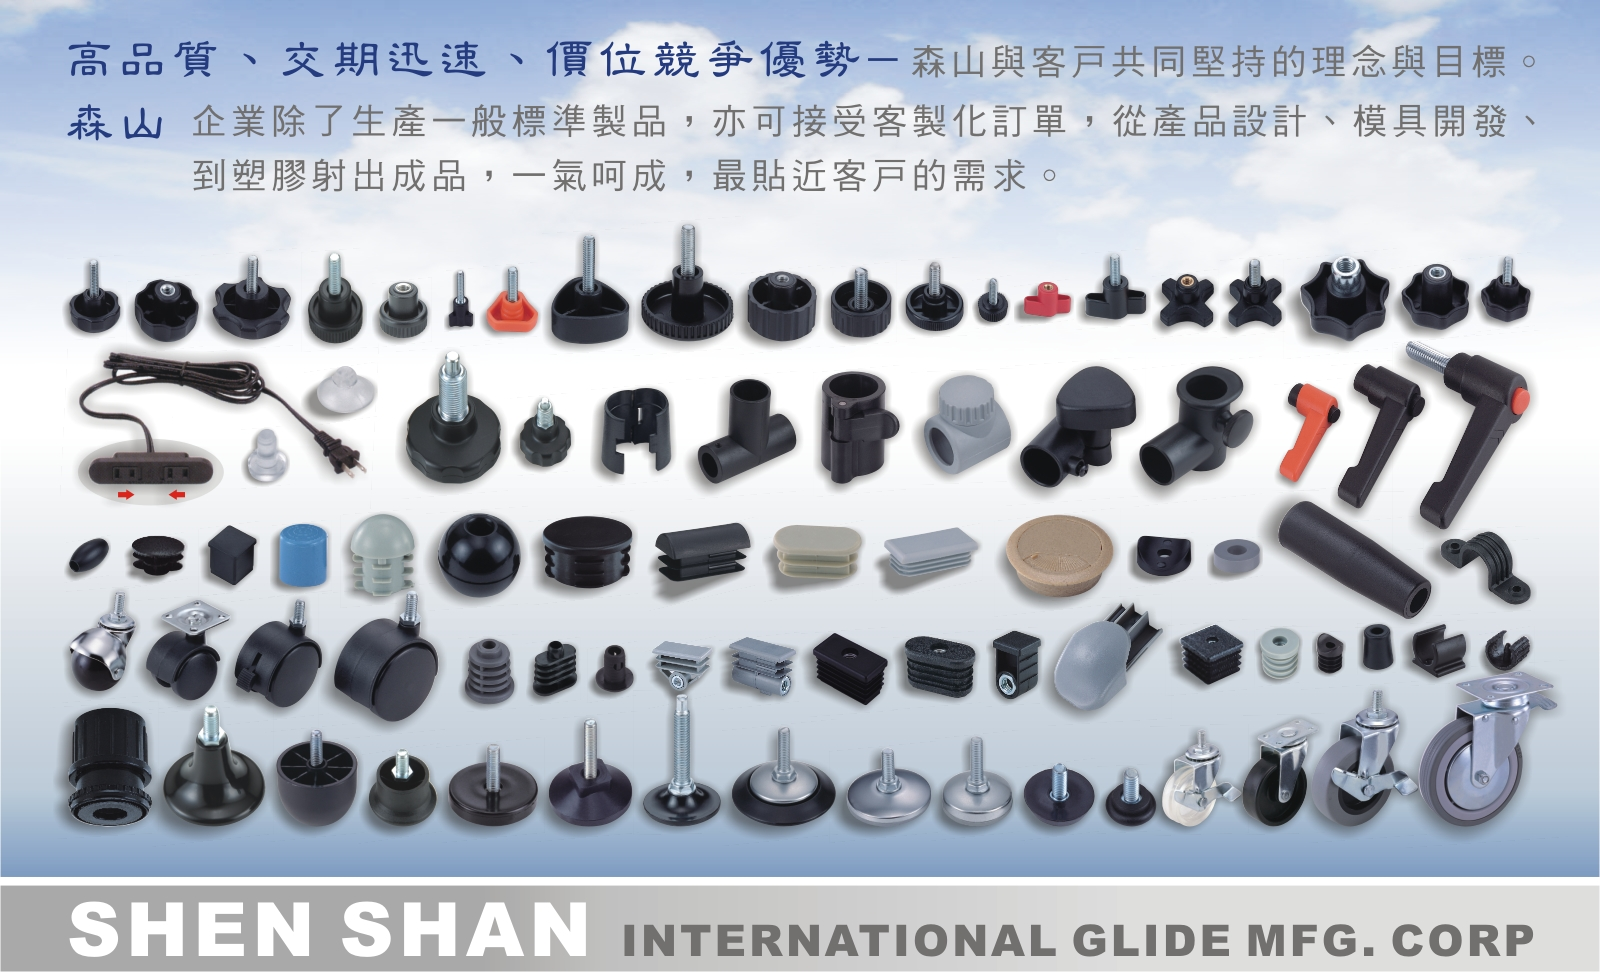 Shen Shan's wide product range has been built over 30 years.